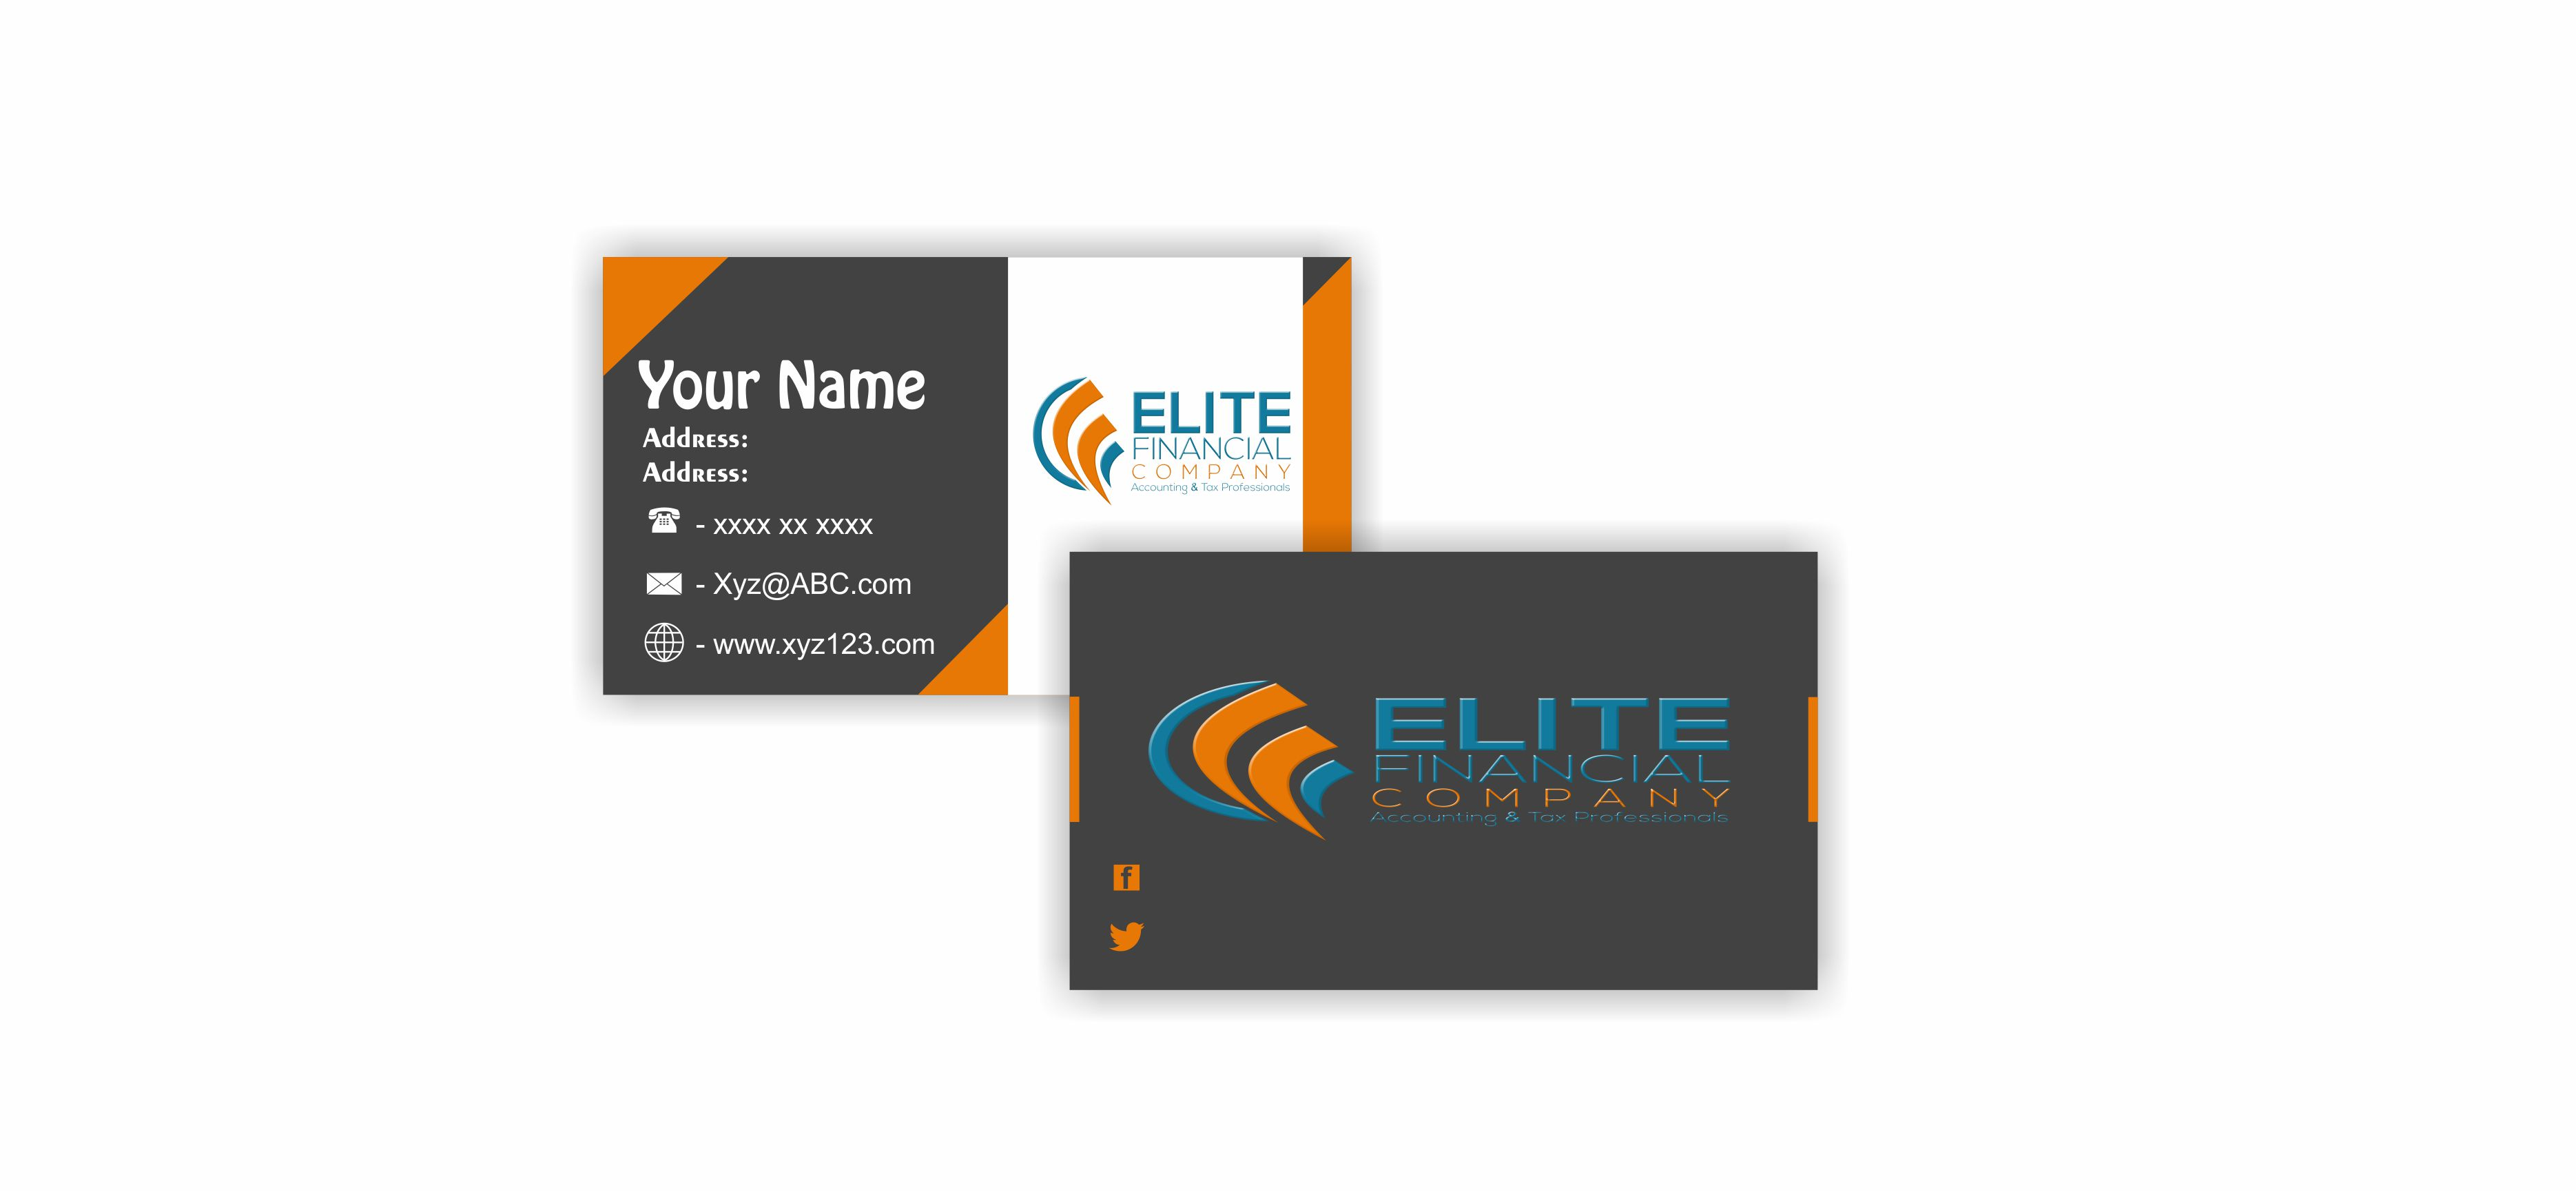 Single Sided Business Card Design Ideas